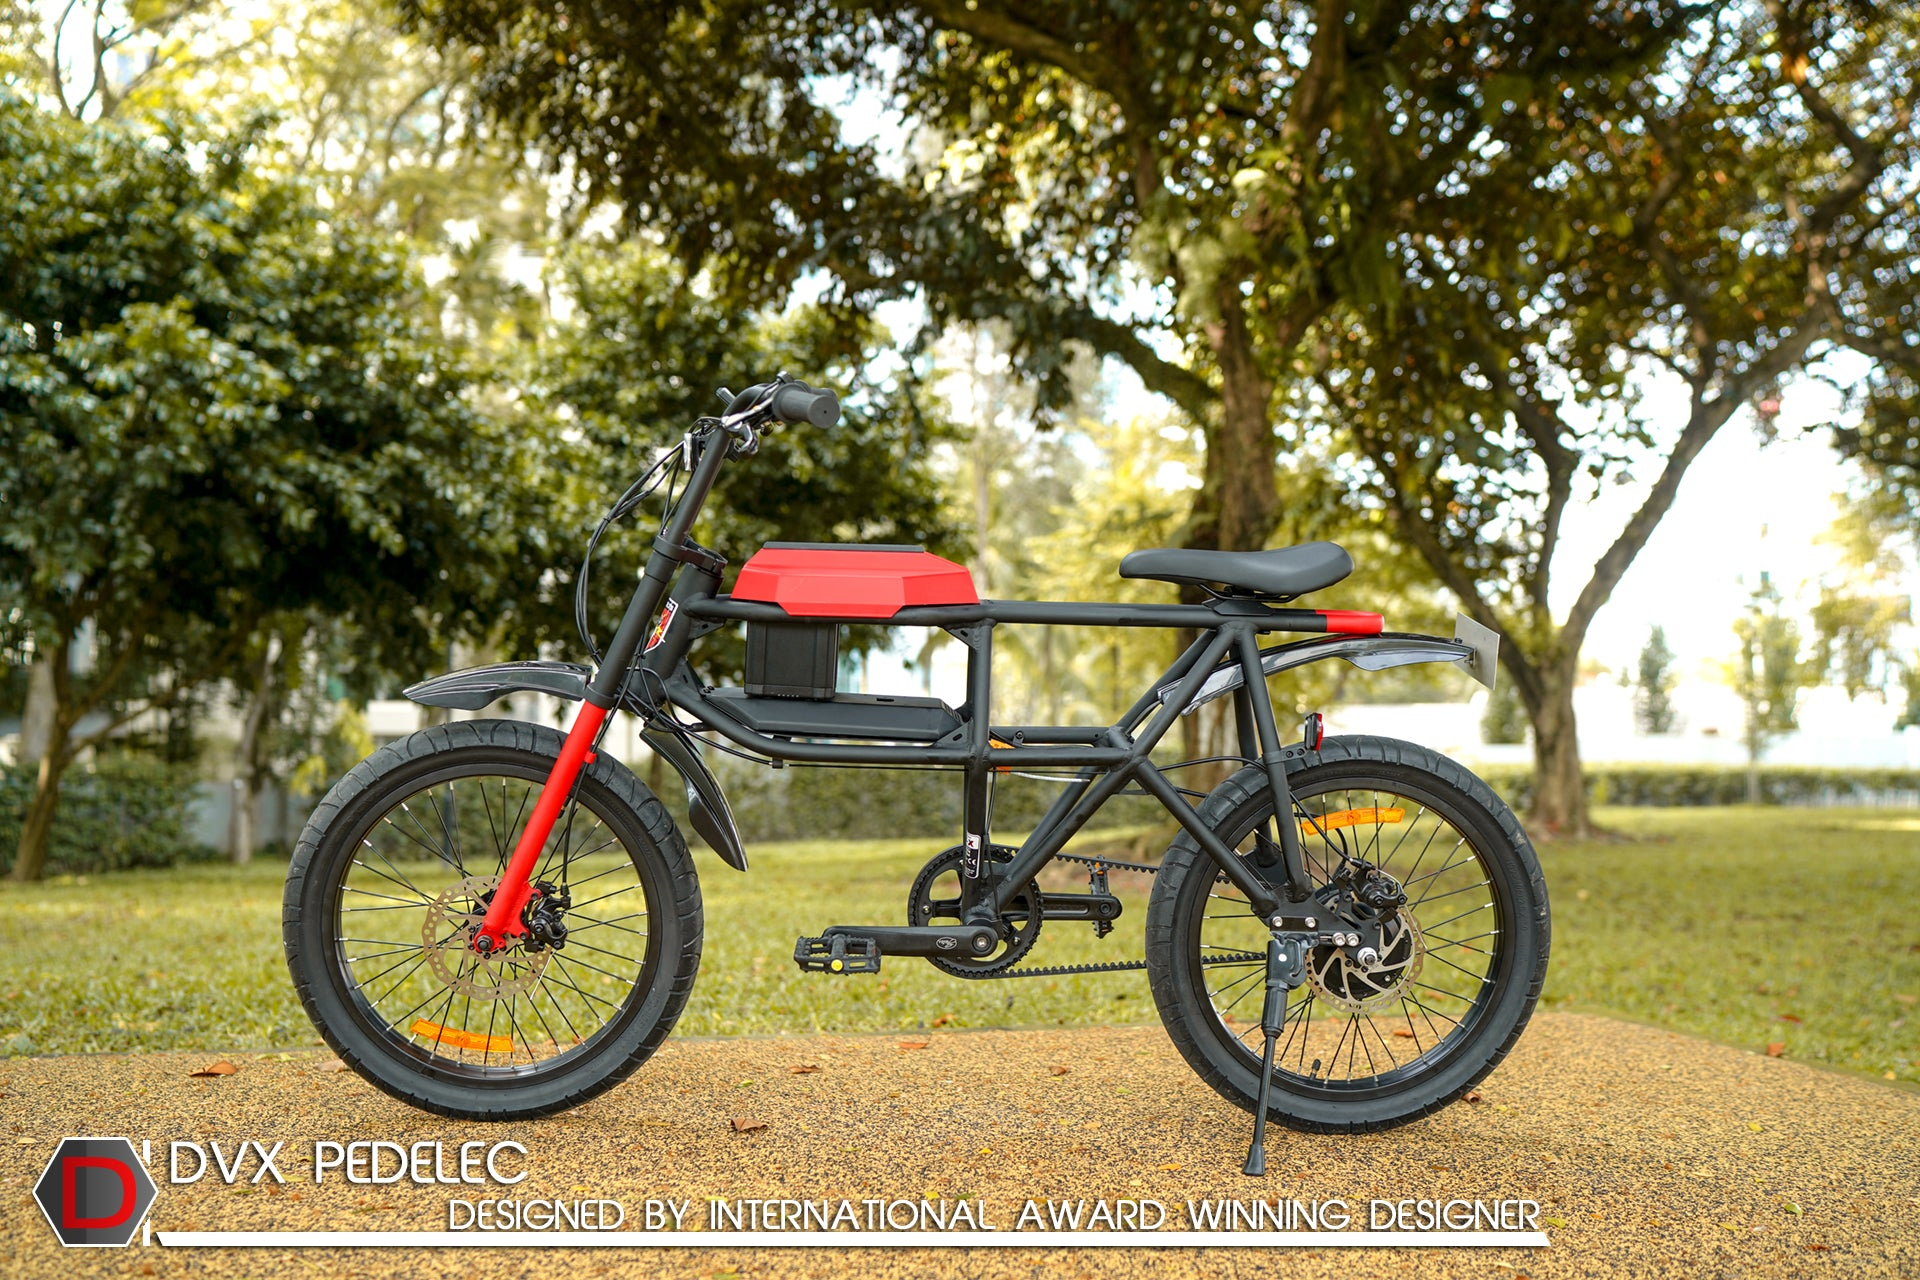 DVX pedelec electric bicycle